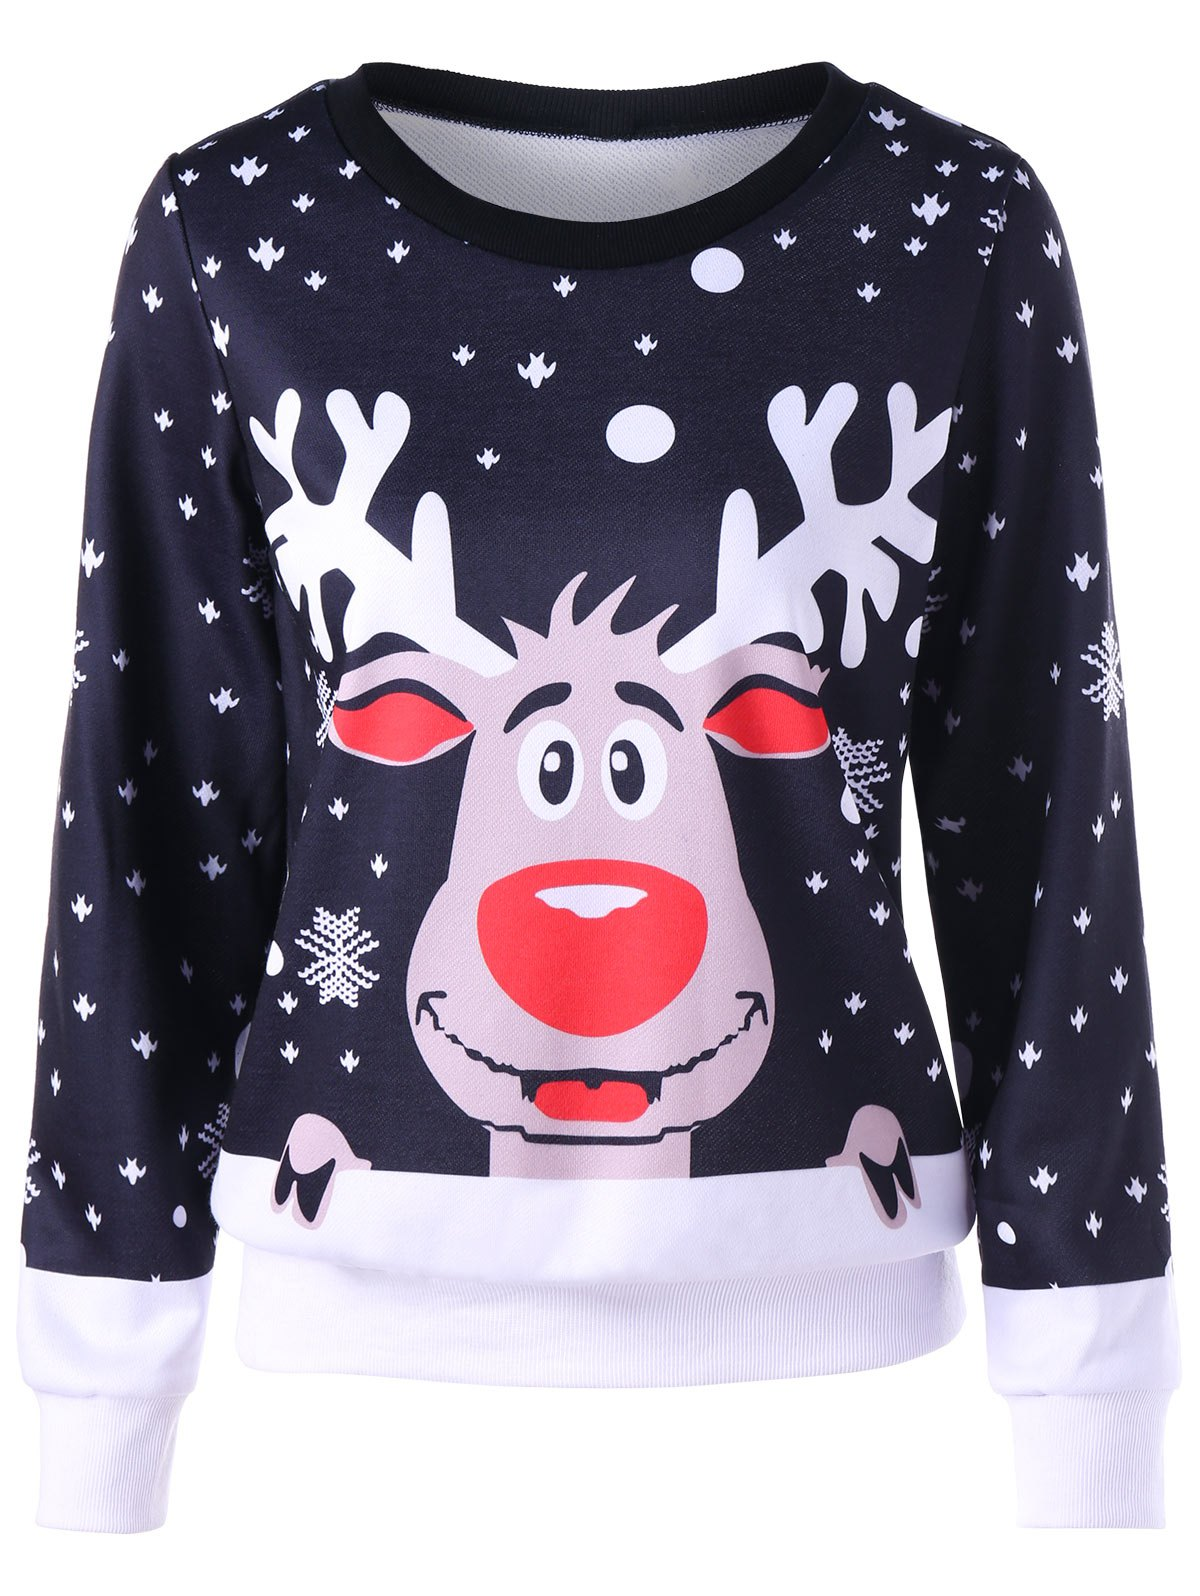 Shop Ugly Christmas Snowflake Elk Crew Neck Sweatshirt